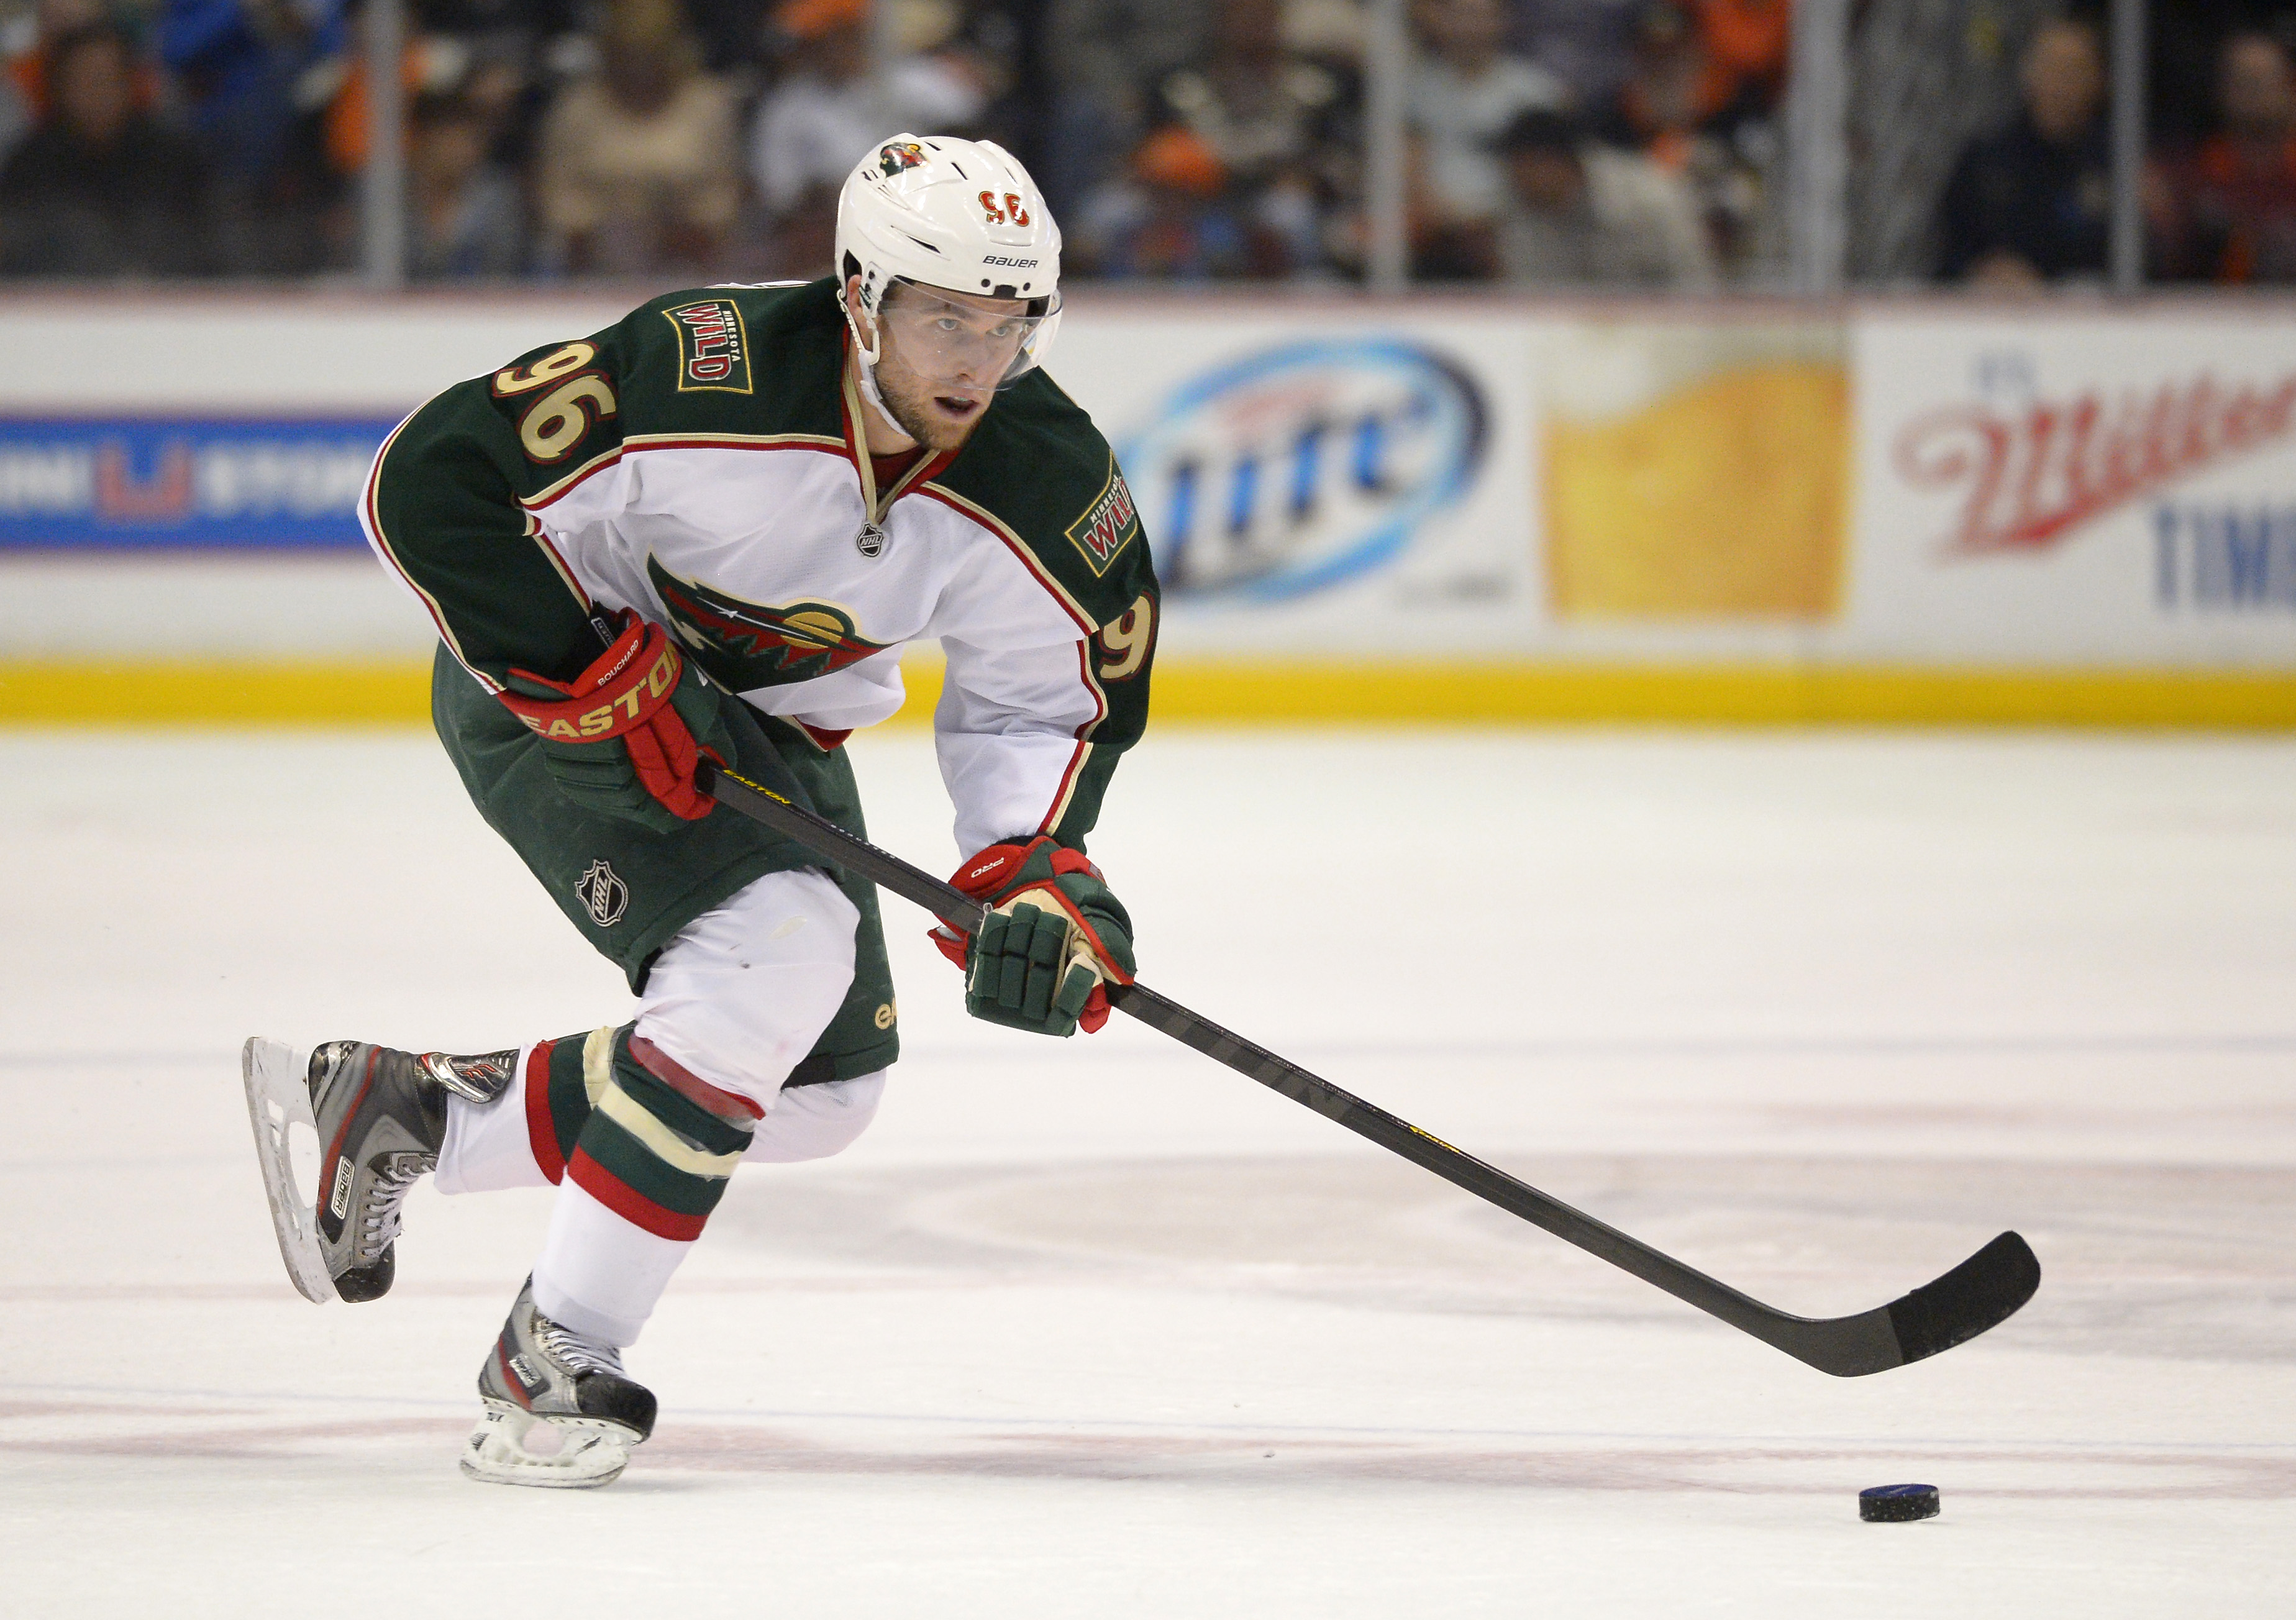 In this Friday, March 1, 2013 photo, Minnesota Wild right wing Pierre-Marc Bouchard skates with the puck during the first period of their game against the Anaheim Ducks in Anaheim. Longtime Minnesota Wild forward Bouchard has announced his retirement, Age